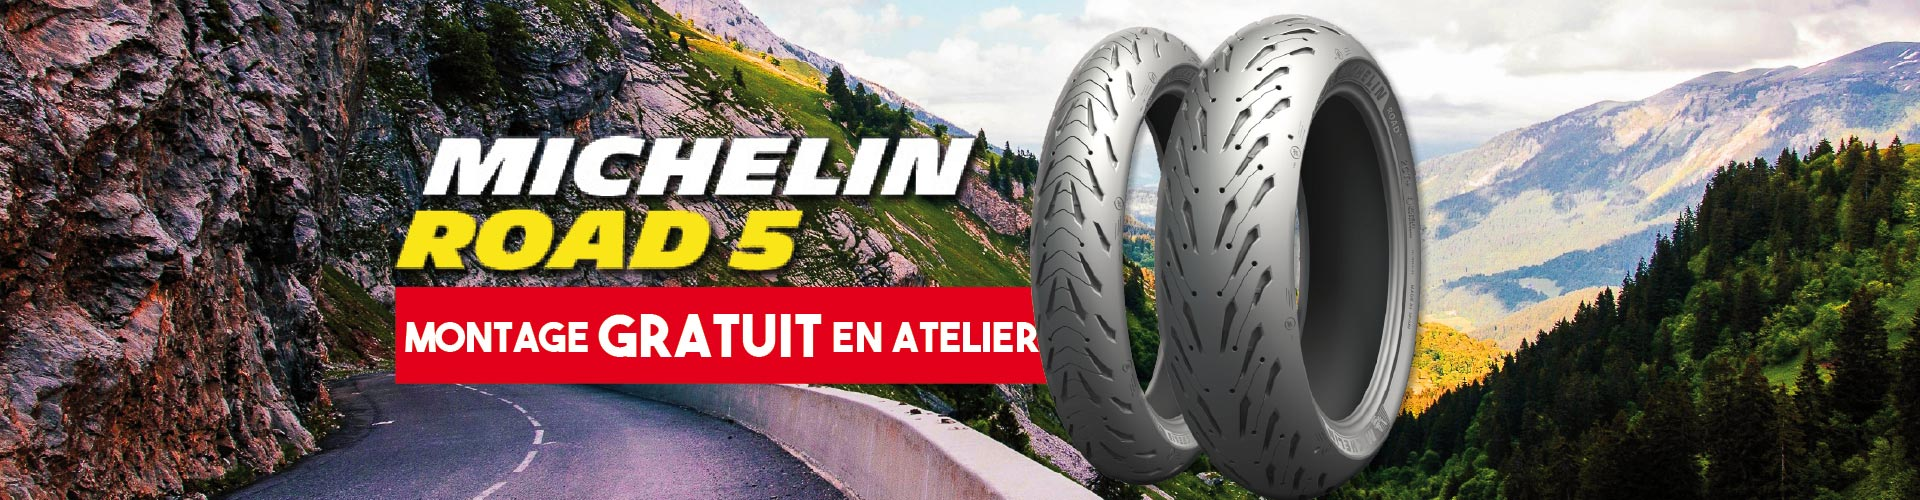 Promo Michelin Road 5